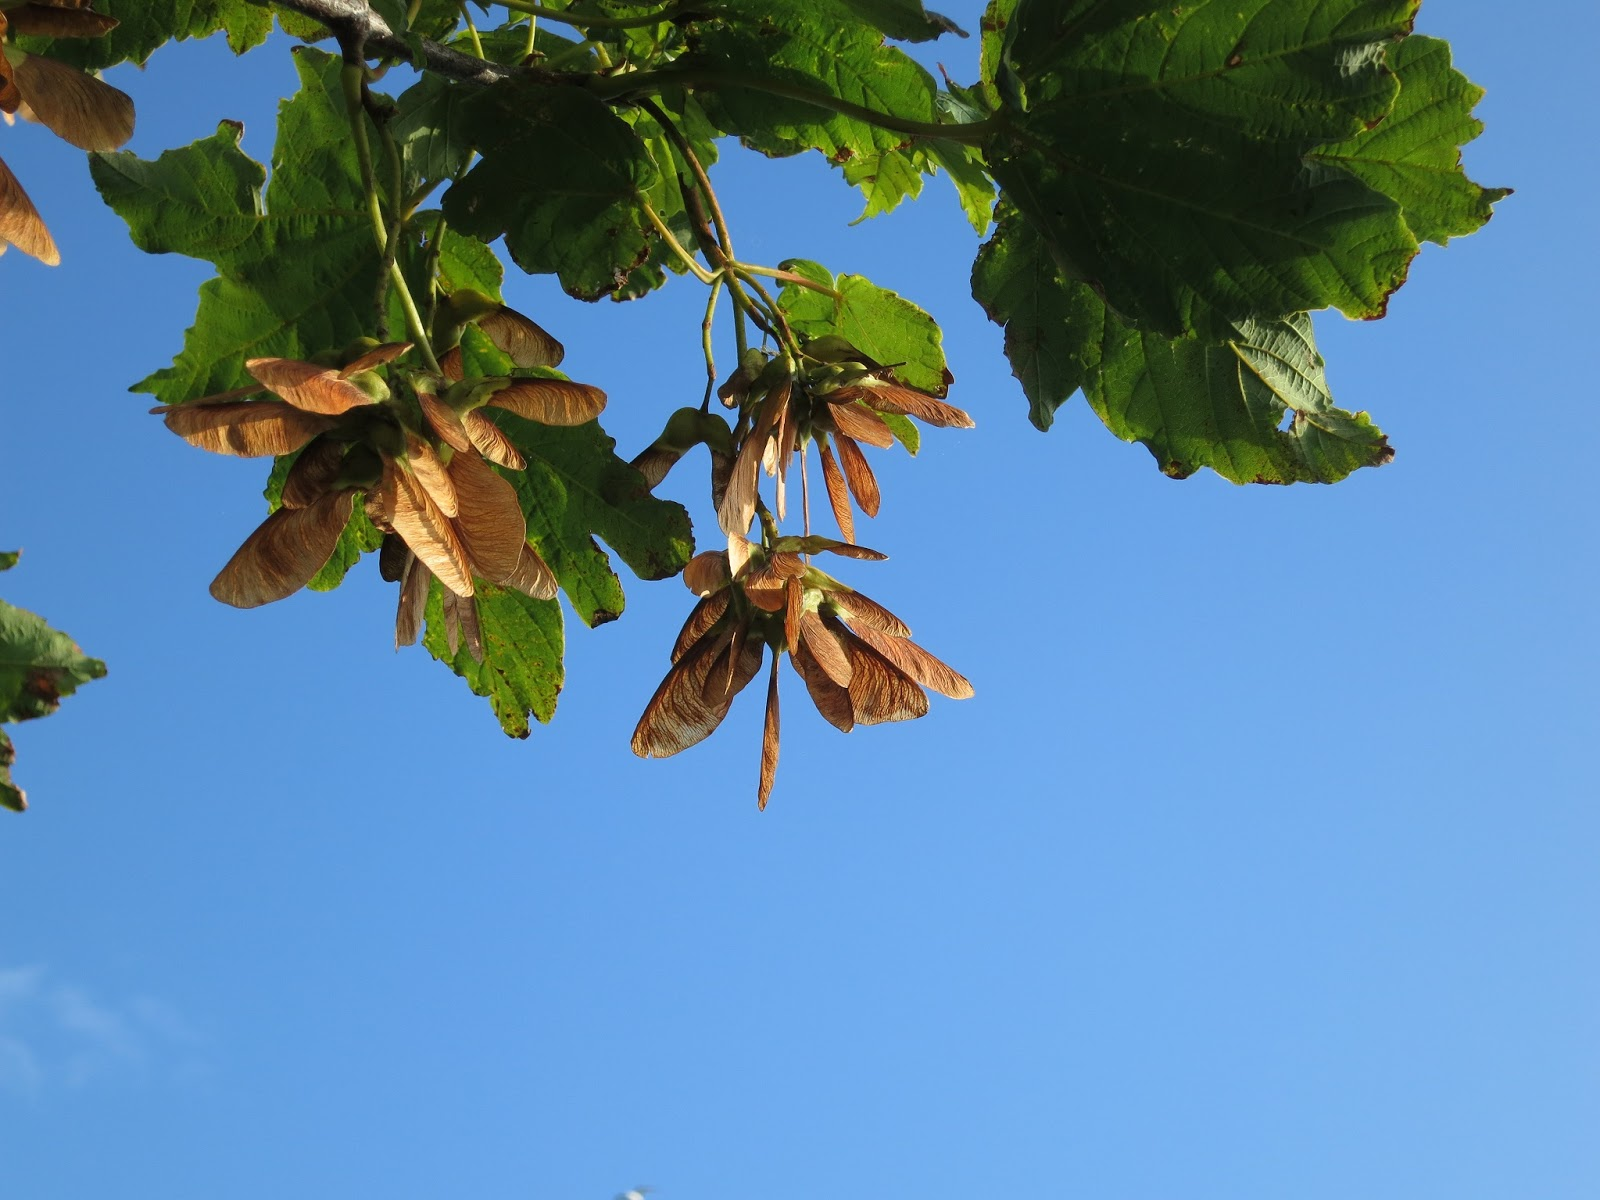 Sycamore or maple seeds and leaves against blue sky